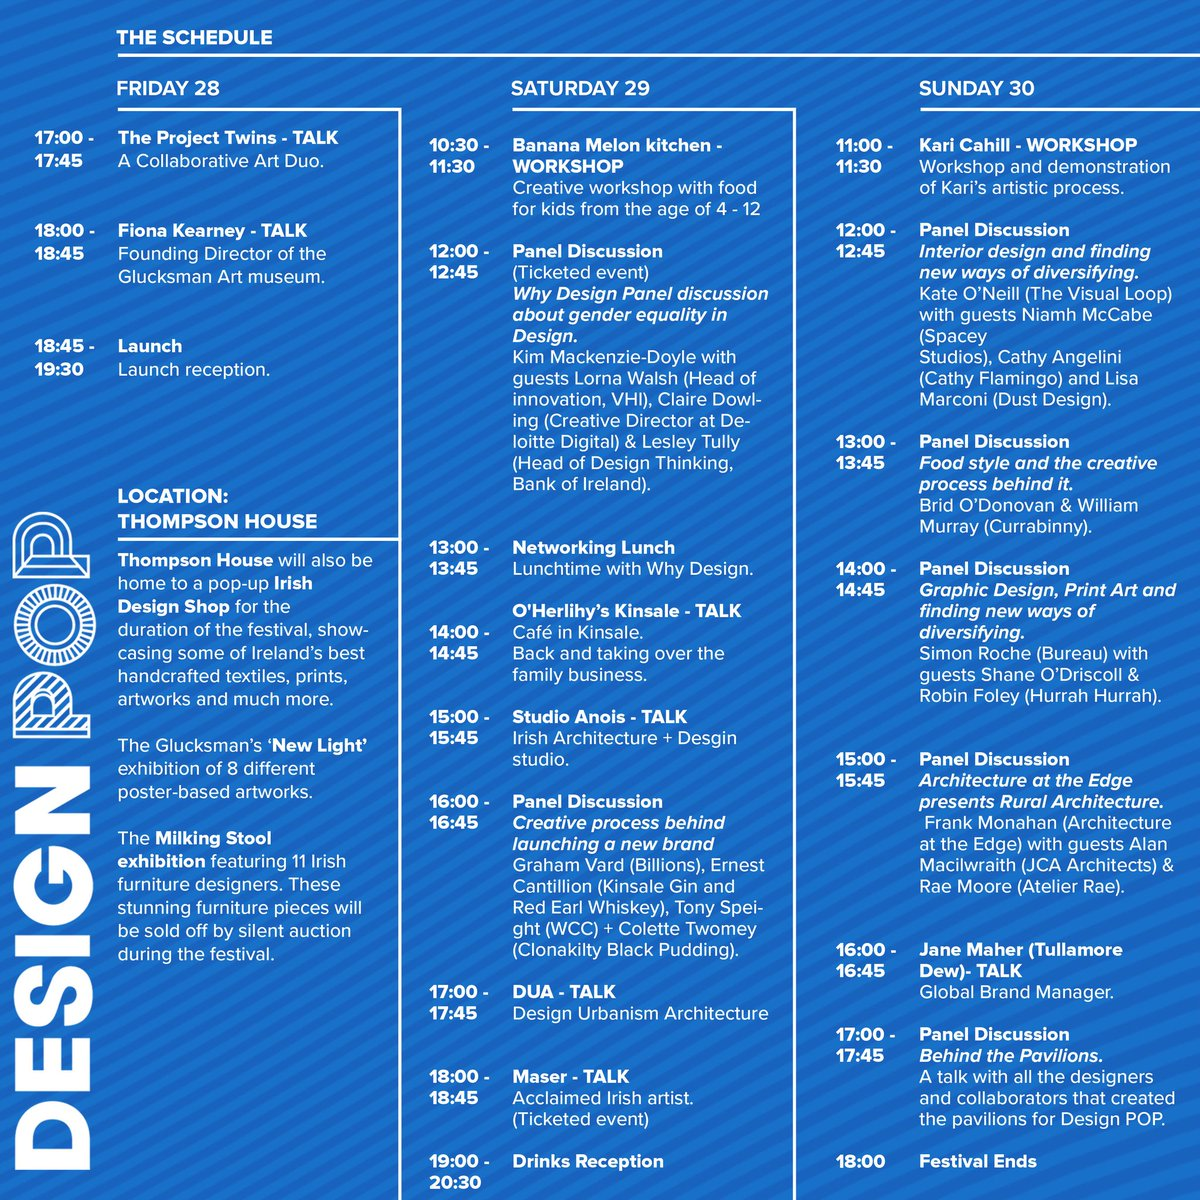 The Design POP schedule has been announced!! So excited!DP takes place from the 28-30th of August in Cork. Go to our website for more details and sign up to our news letter to keep updated on all our announcements. #designpop2020 #designpopcork #designandfood #designfestival https://t.co/hFM0DI0wVK